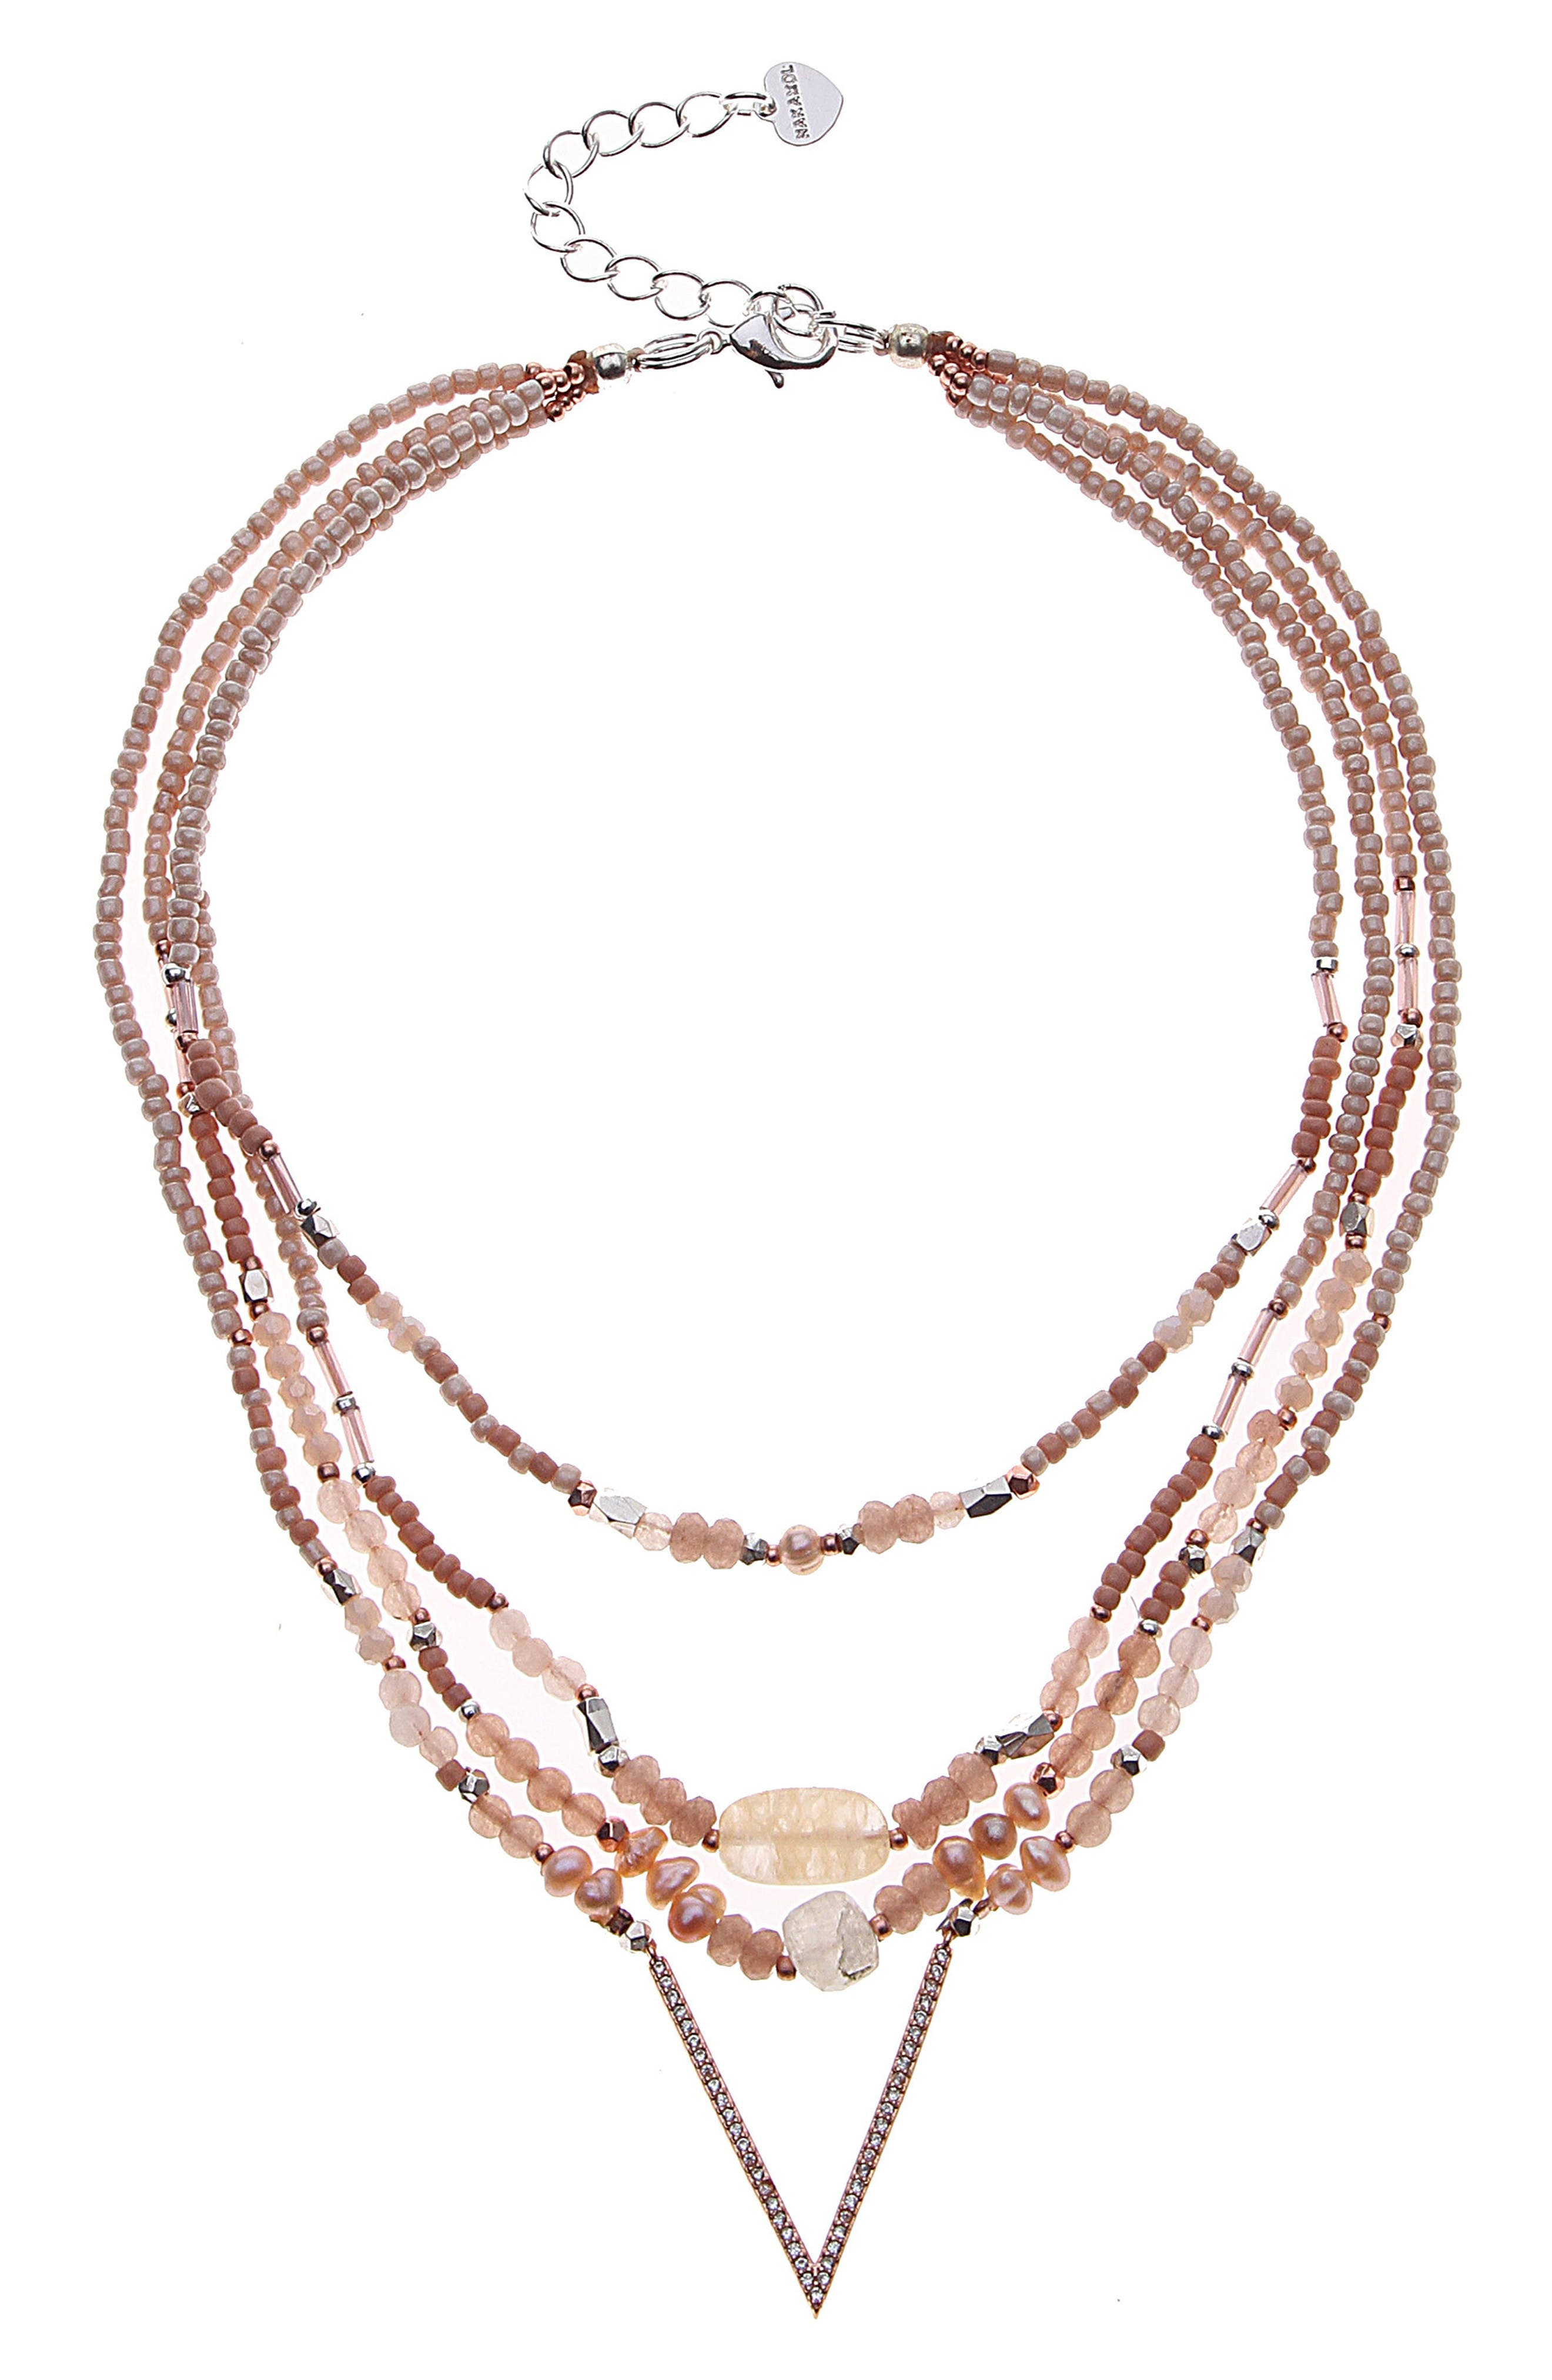 Crystal & Freshwater Pearl Multistrand Pendant Necklace,                             Main thumbnail 1, color,                             Nude